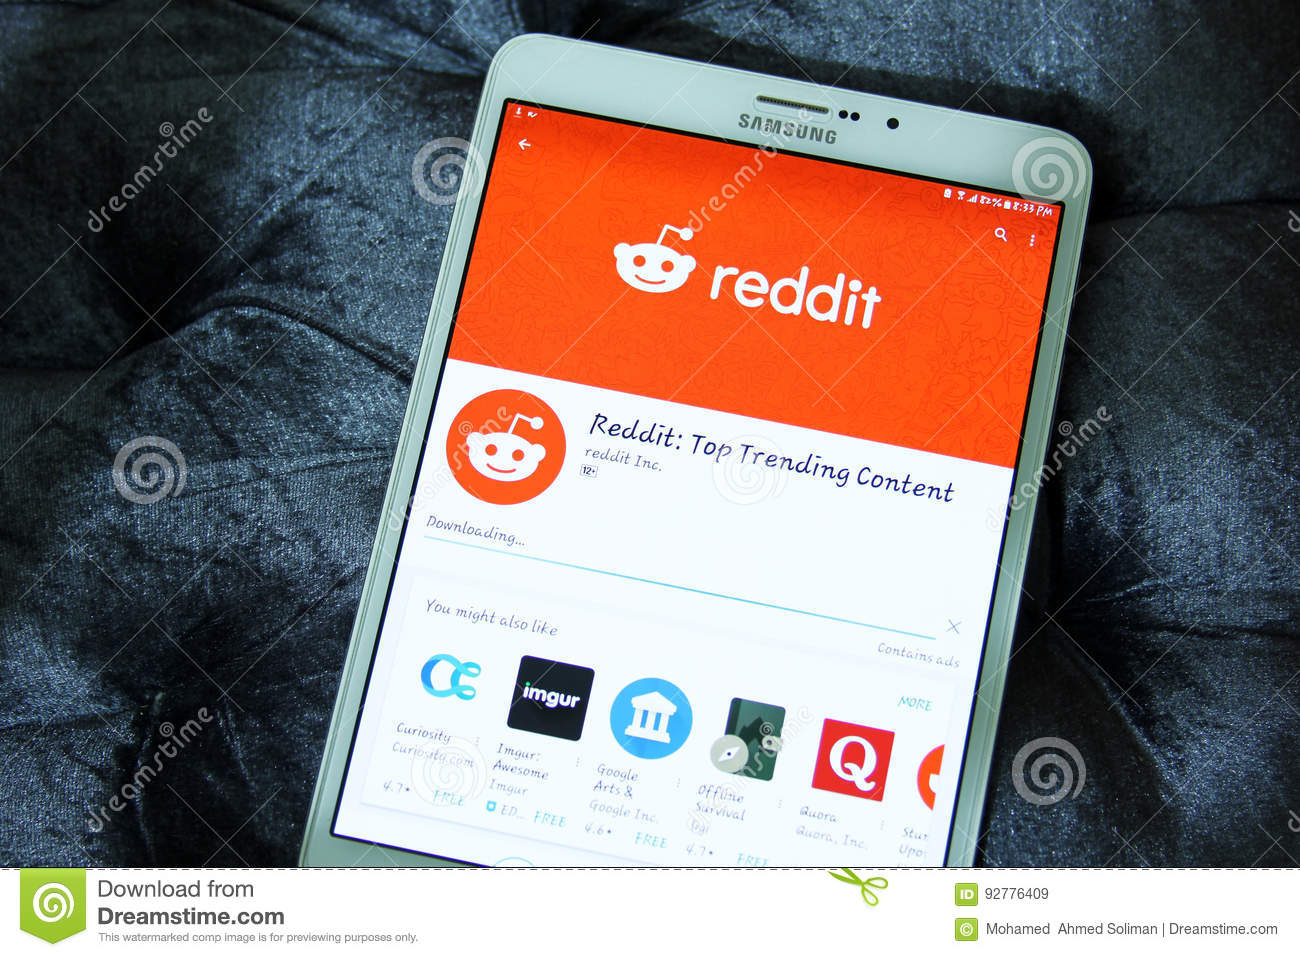 Reddit mobile app editorial stock image  Image of android - 92776409